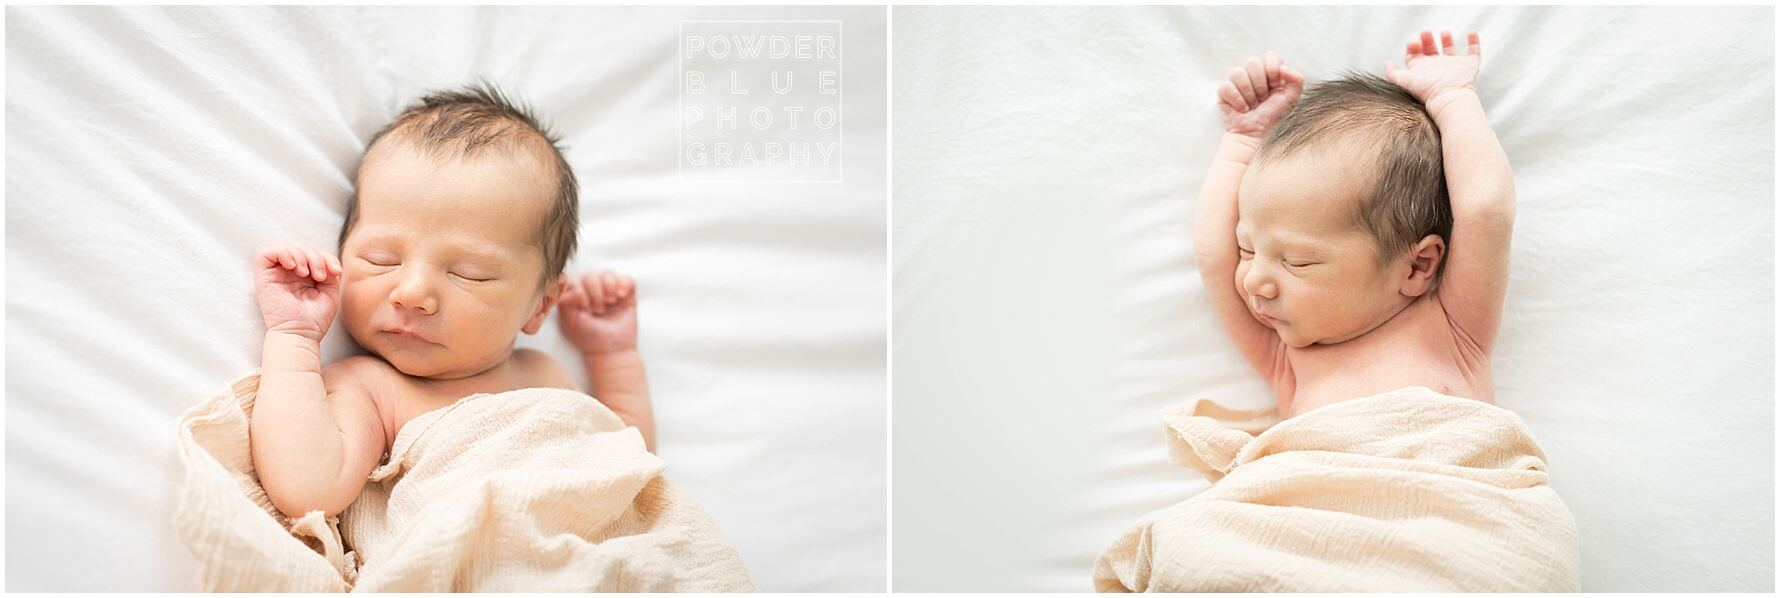 pittsburgh photography baby newborns. baby boy in natural lifestyle newborn photographer pose.